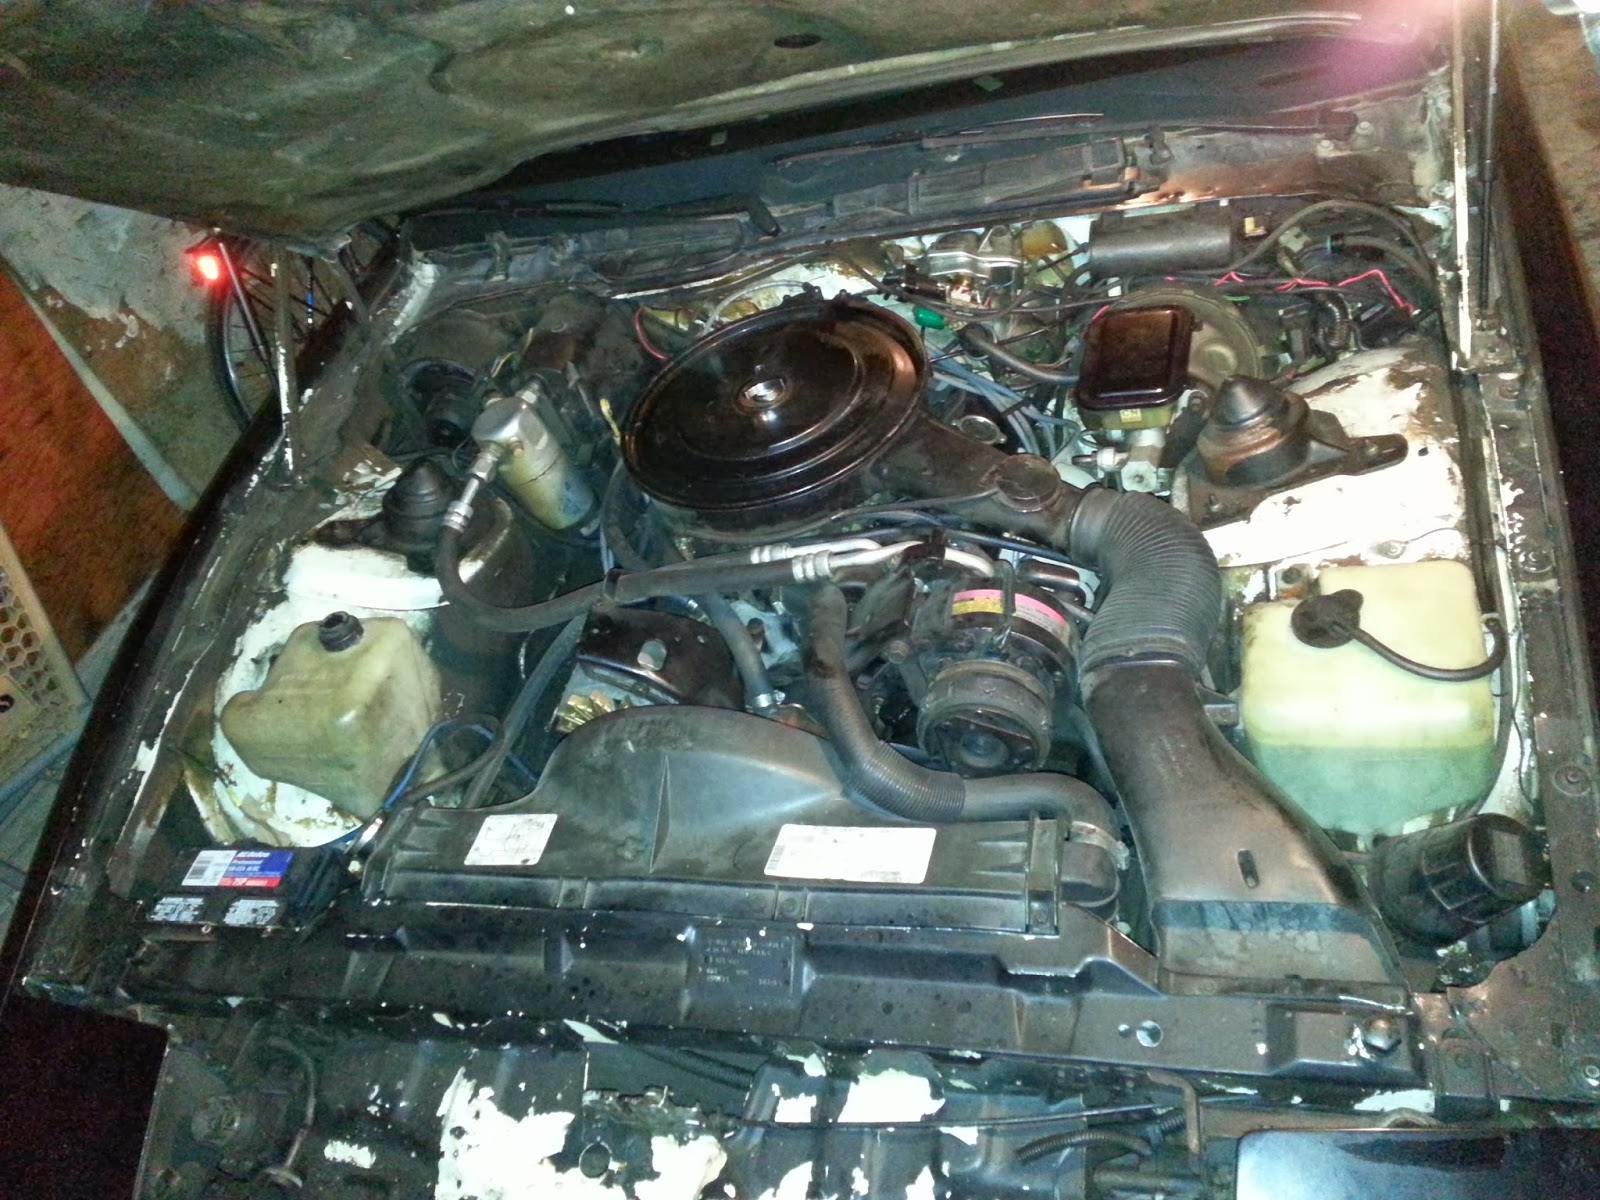 My Knight Rider 2000 Project So Whats Under The Hood